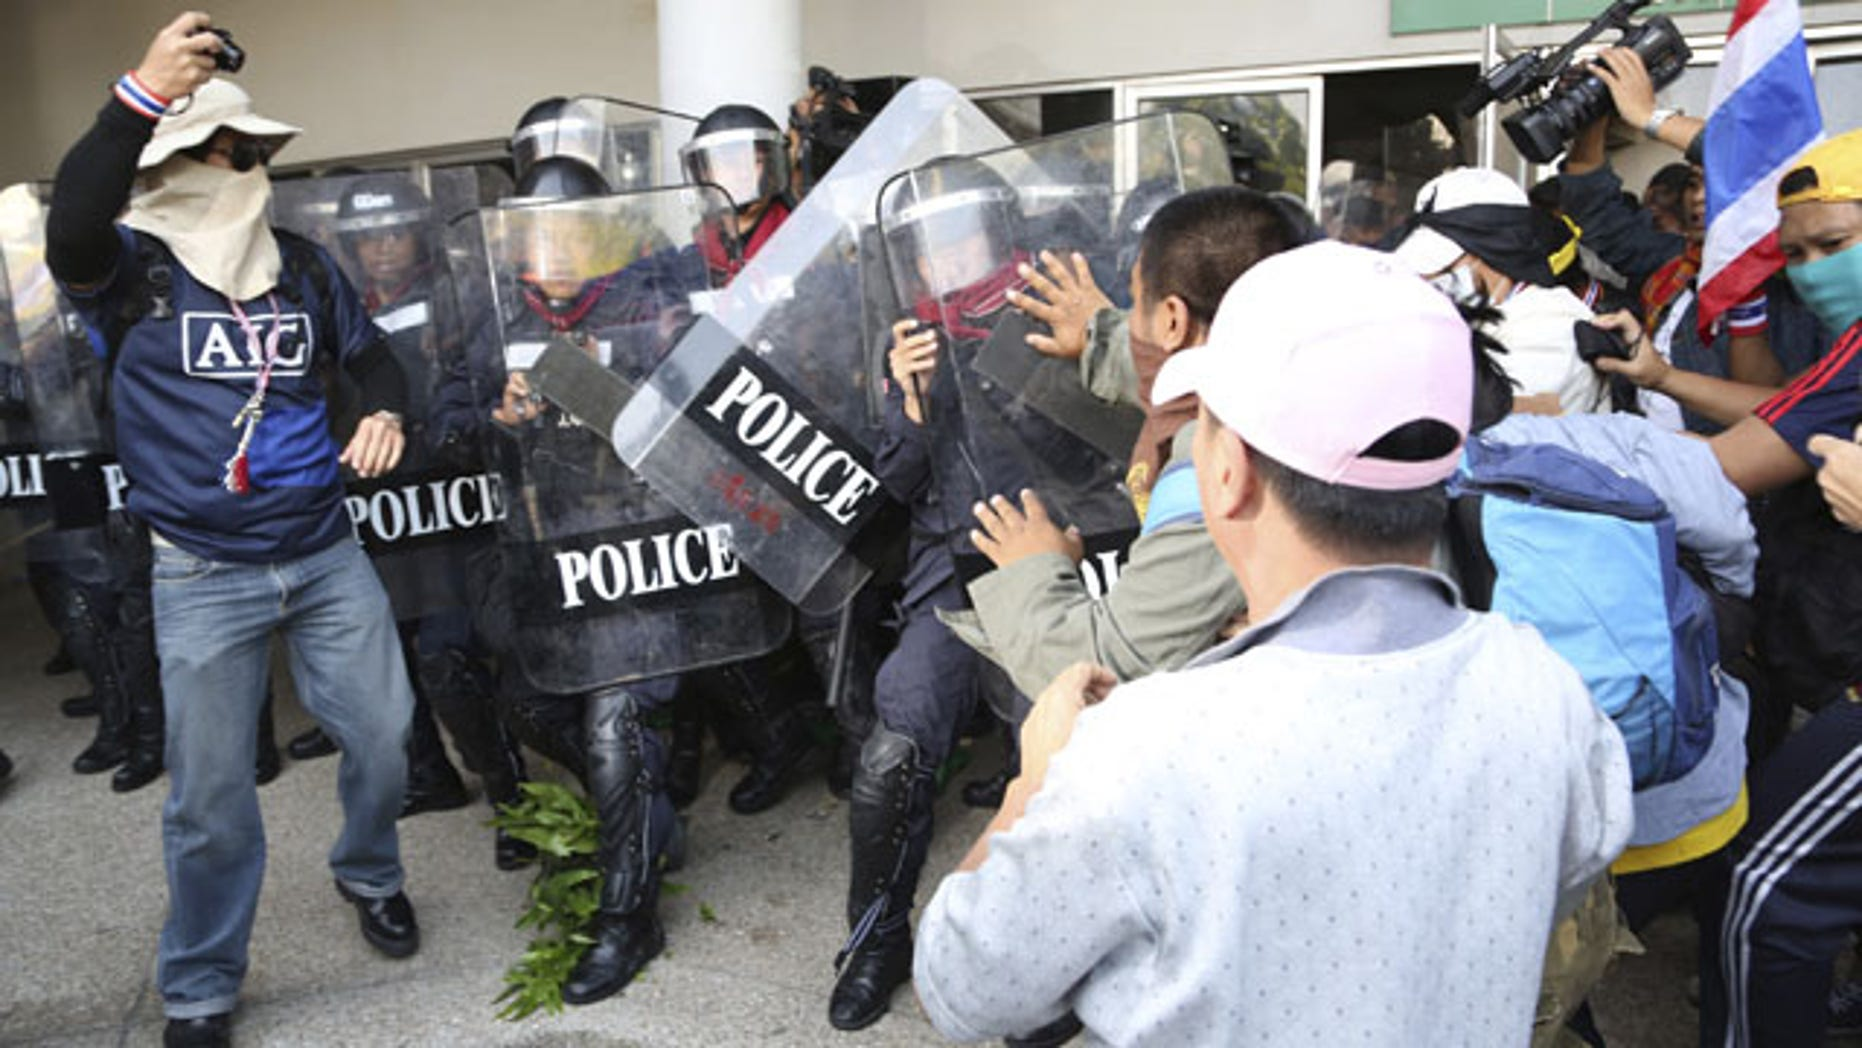 December 25, 2013: Thai anti-government protesters scuffle with riot policemen in an attempt to disrupt the election registration at a sport gymnasium in Bangkok. Thai Prime Minister Yingluck Shinawatra on Wednesday proposed the formation of a national reform council tasked with finding solutions to the political turmoil that is splitting the country and paralyzing governance. (AP Photo/Apichart Weerawong)